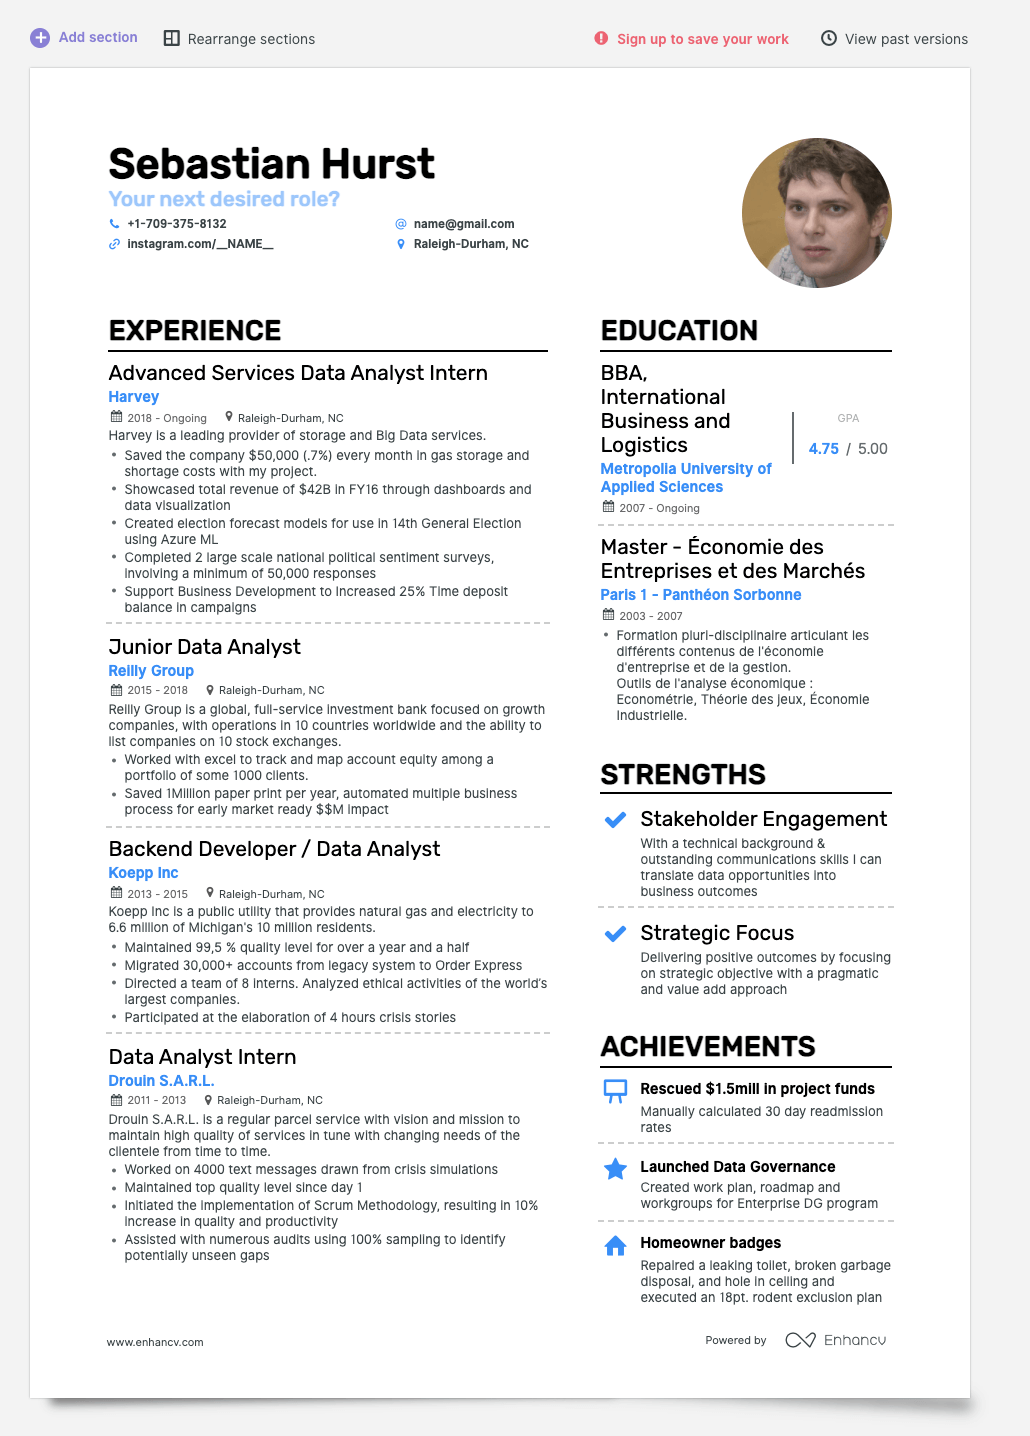 Enhancv How to Do Your References On Resume: Is It Important?